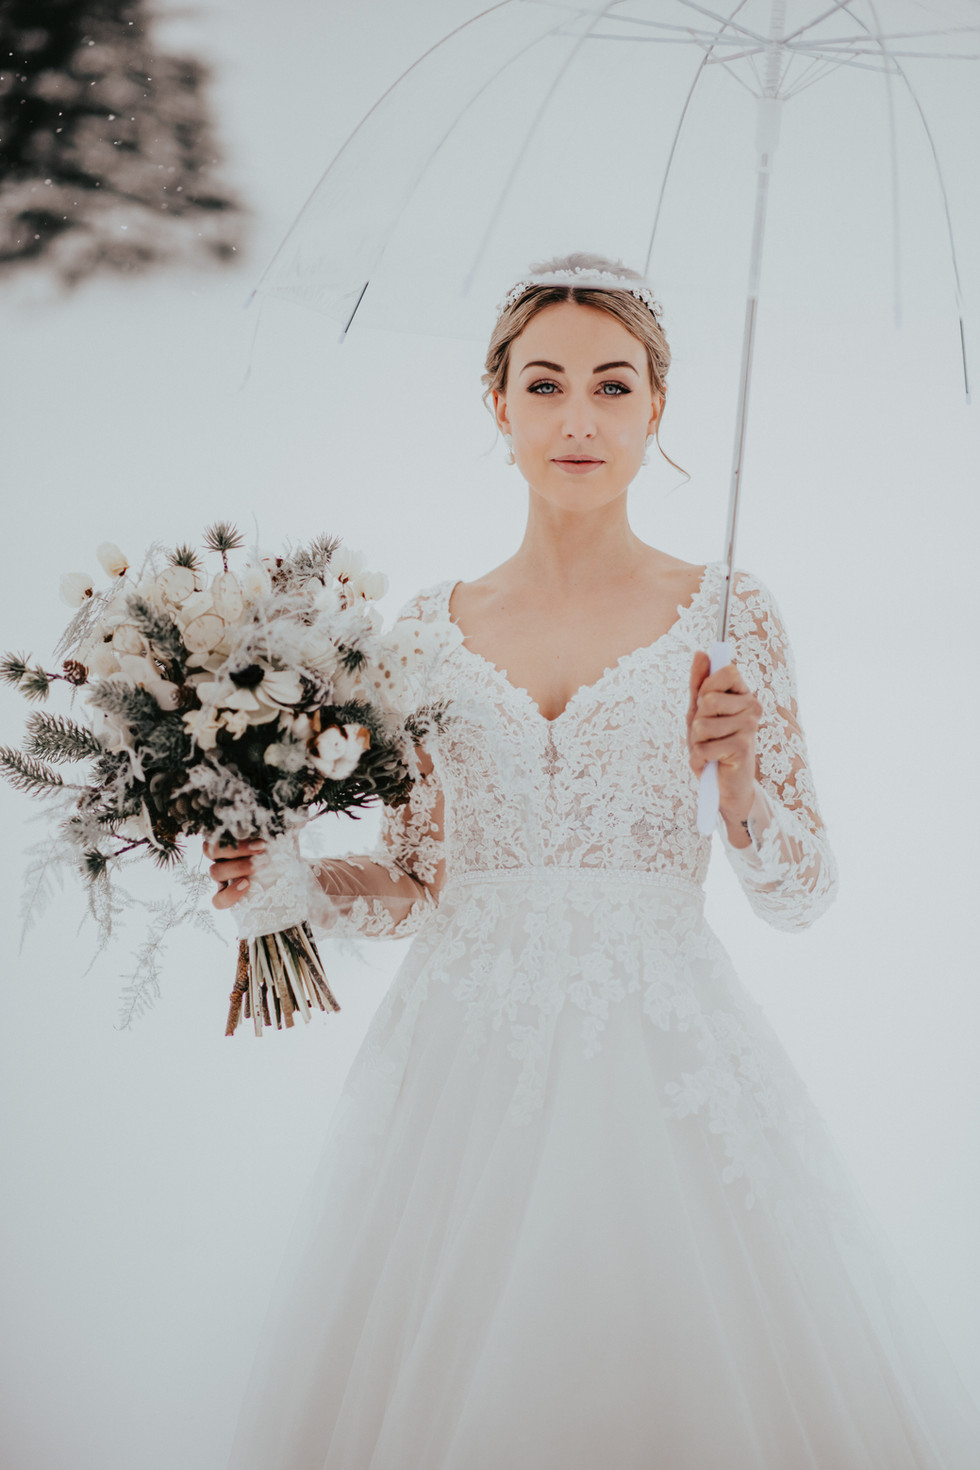 Foto: kuenzli-photography.com Styling: isa-belle.ch Flowers by me